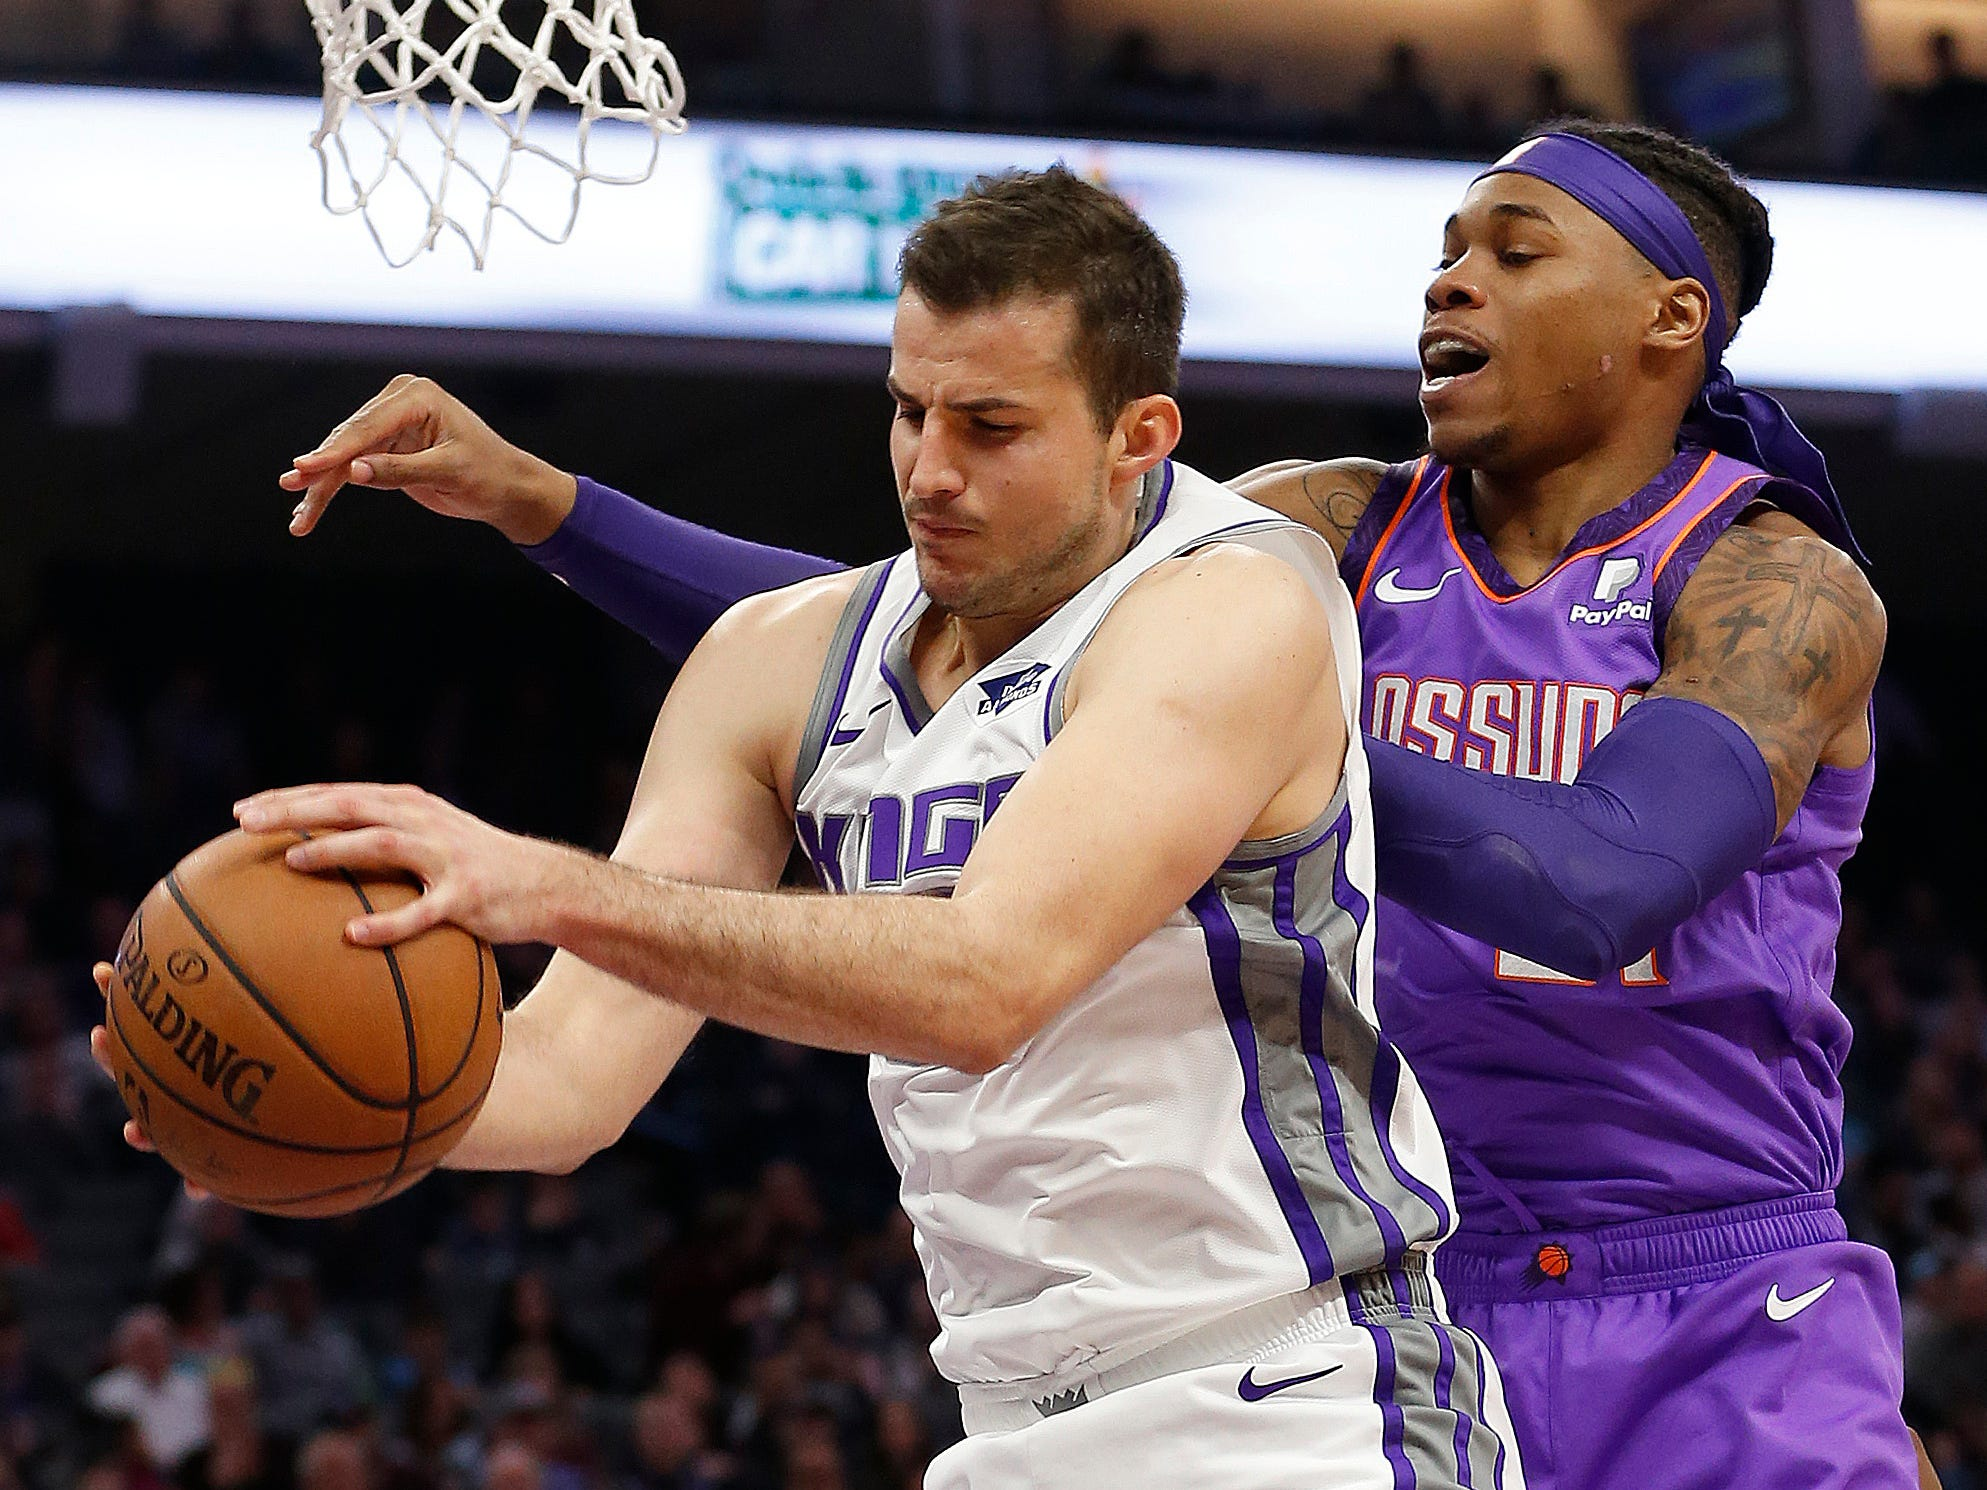 Sacramento Kings forward Nemanja Bjelica, left, grabs a rebound in front of Phoenix Suns forward Richaun Holmes during the first quarter of an NBA basketball game Saturday, March 23, 2019, in Sacramento, Calif.